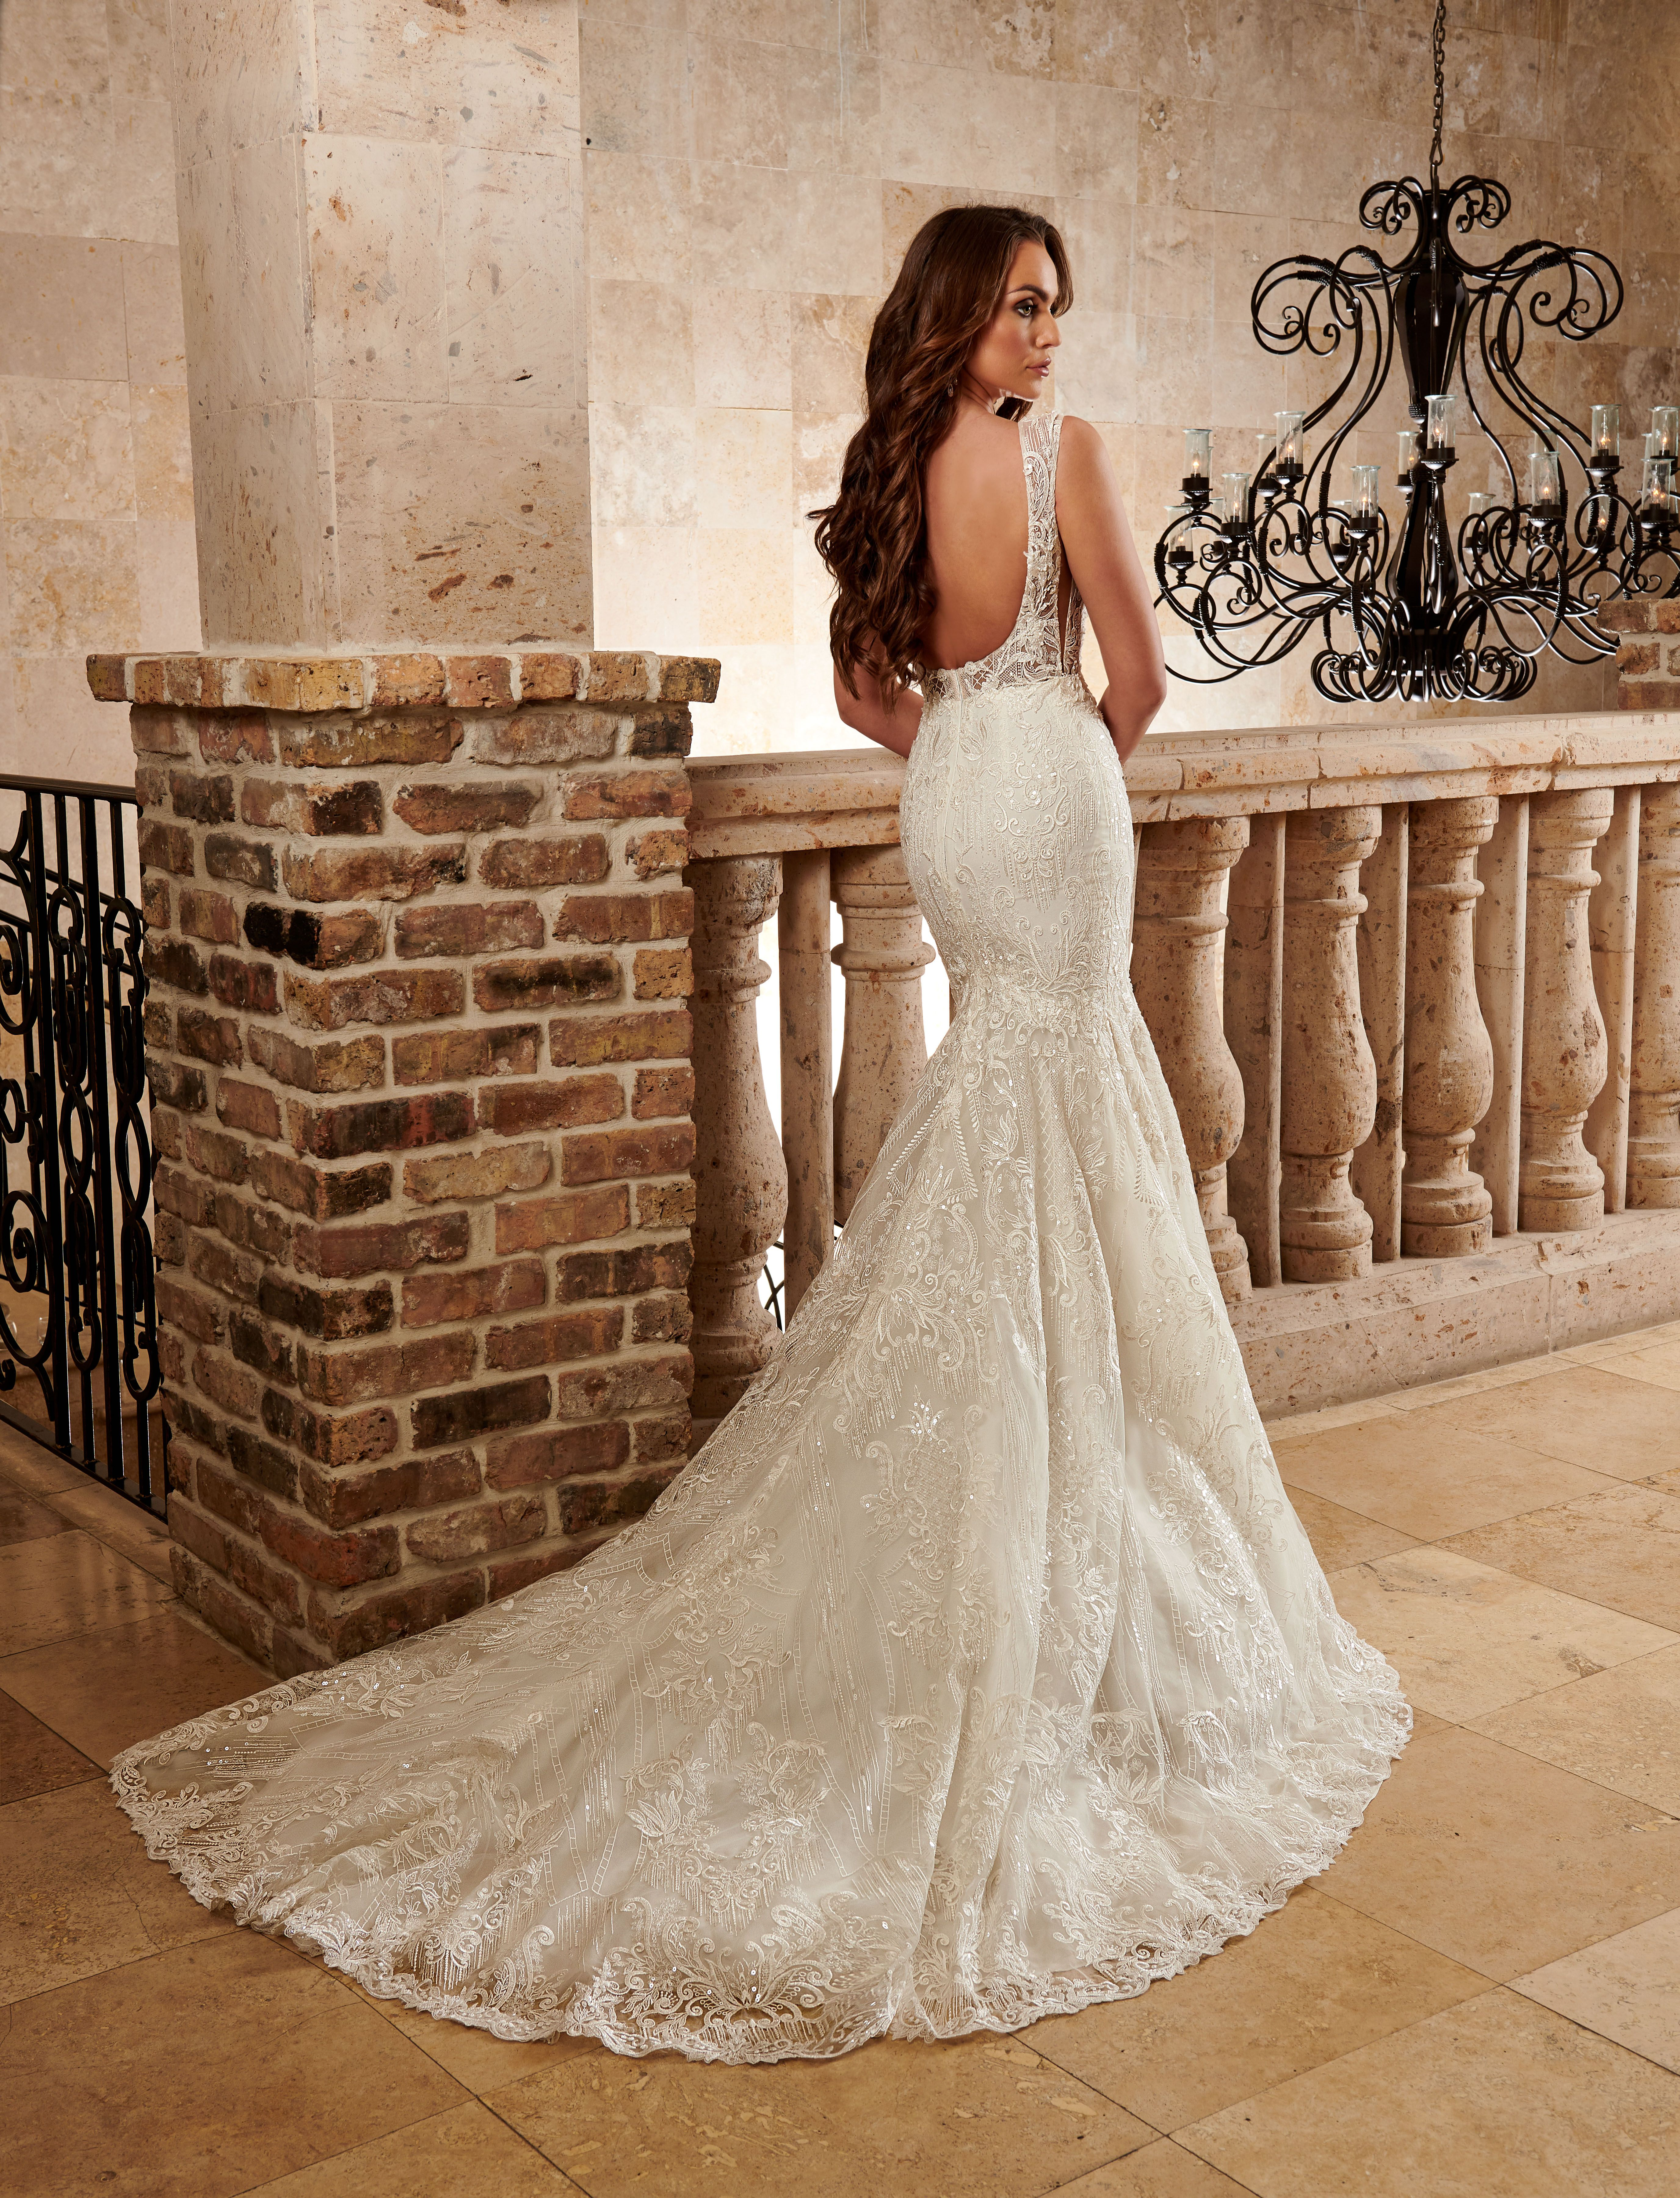 Wedding Dress Wedding Gowns At The Bell Tower On 34th Bridal Portraits In 2020 Wedding Dresses Gown Wedding Dress Best Wedding Dresses